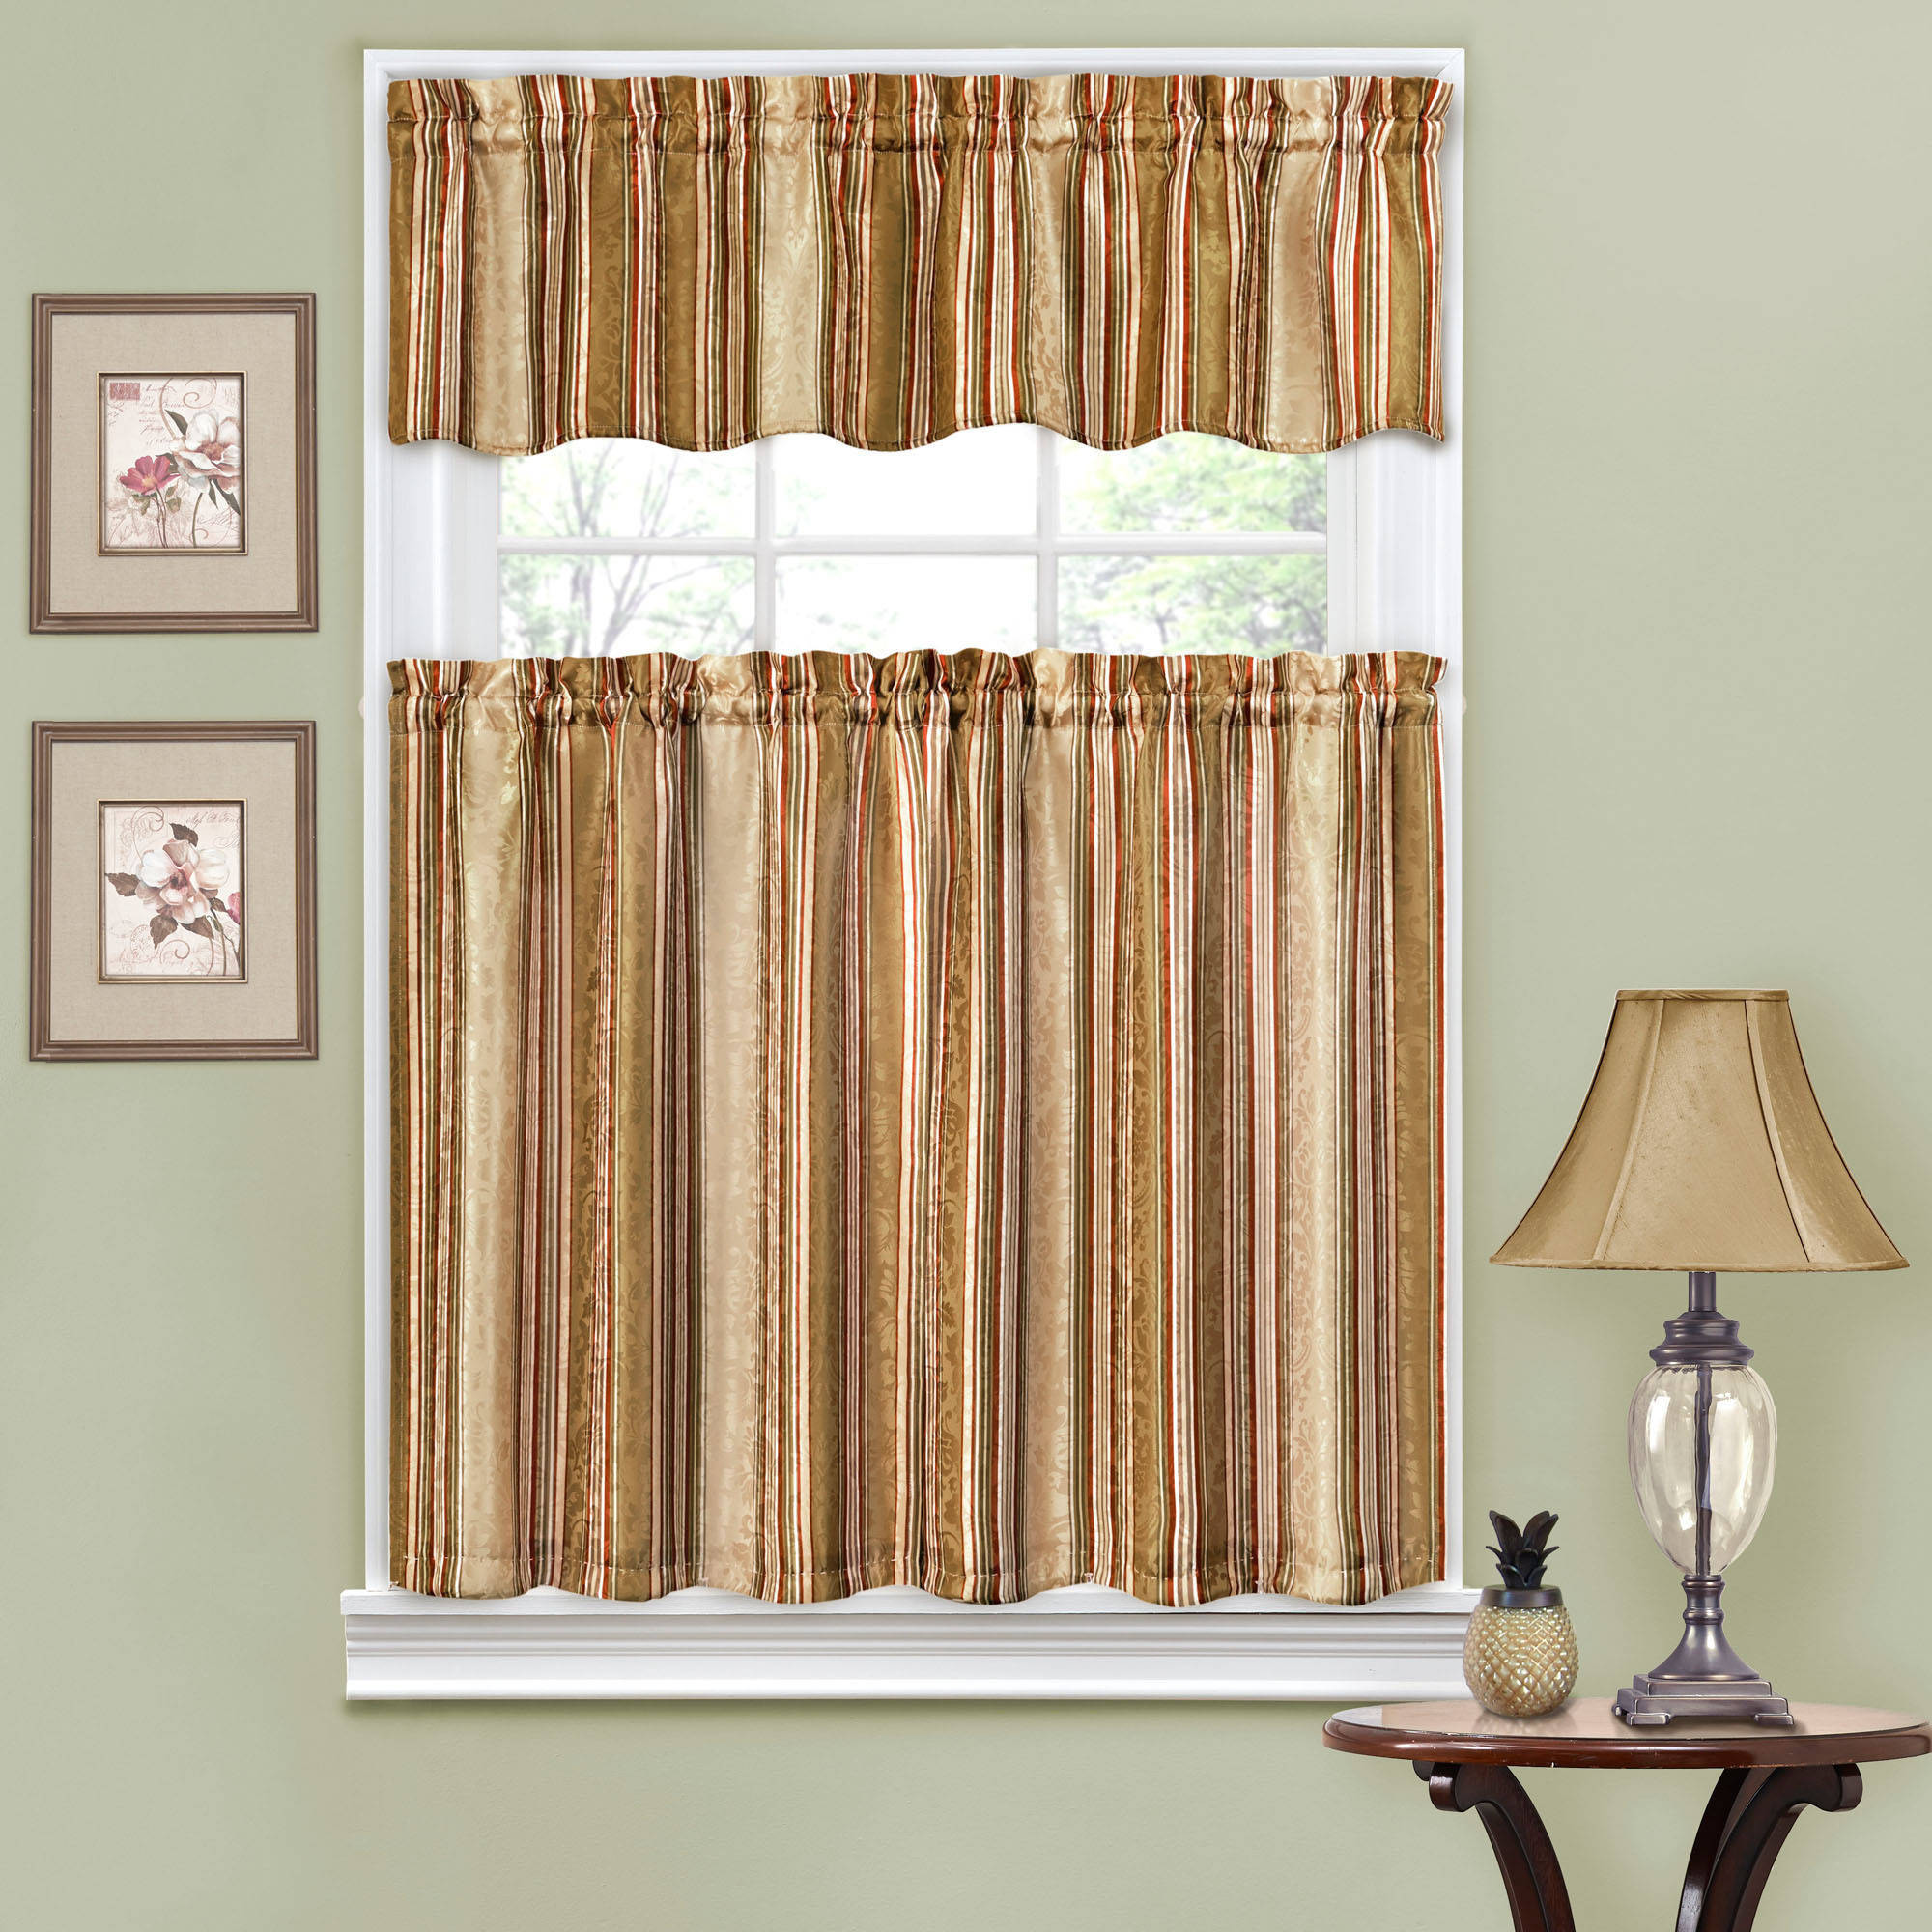 Traditions by Waverly Stripe Ensemble Kitchen Curtain and Valance Set